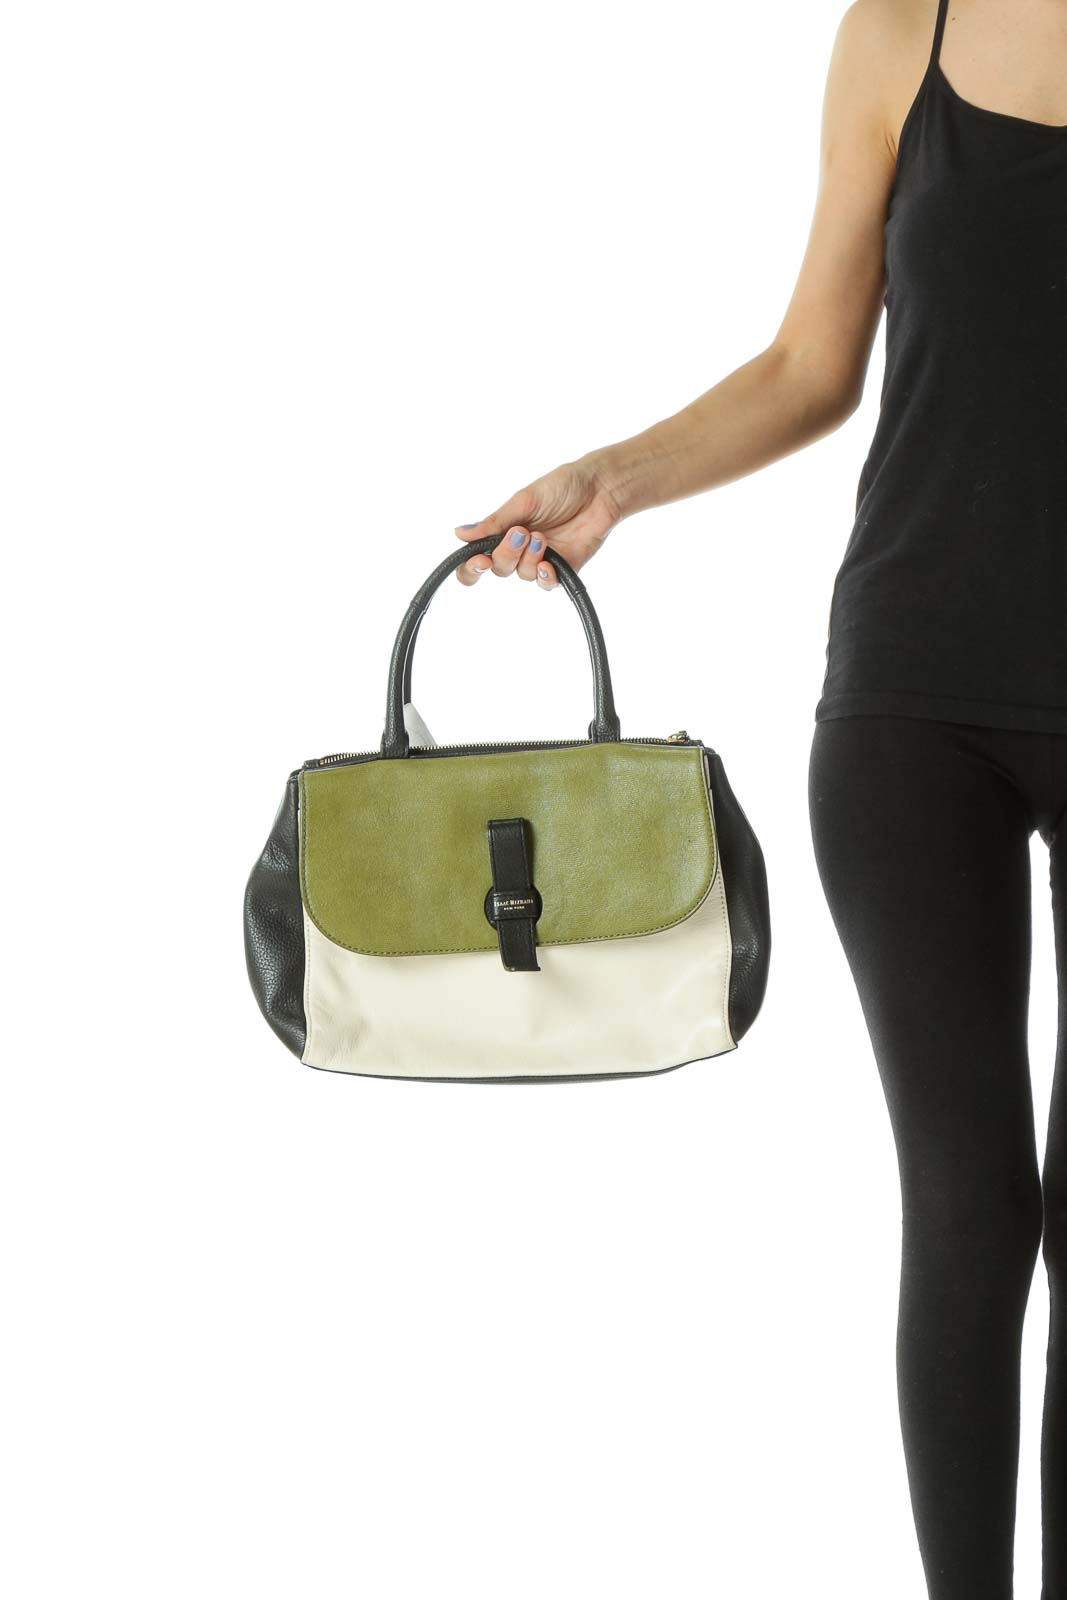 Green/Black/Cream Gold Hardware Satchel